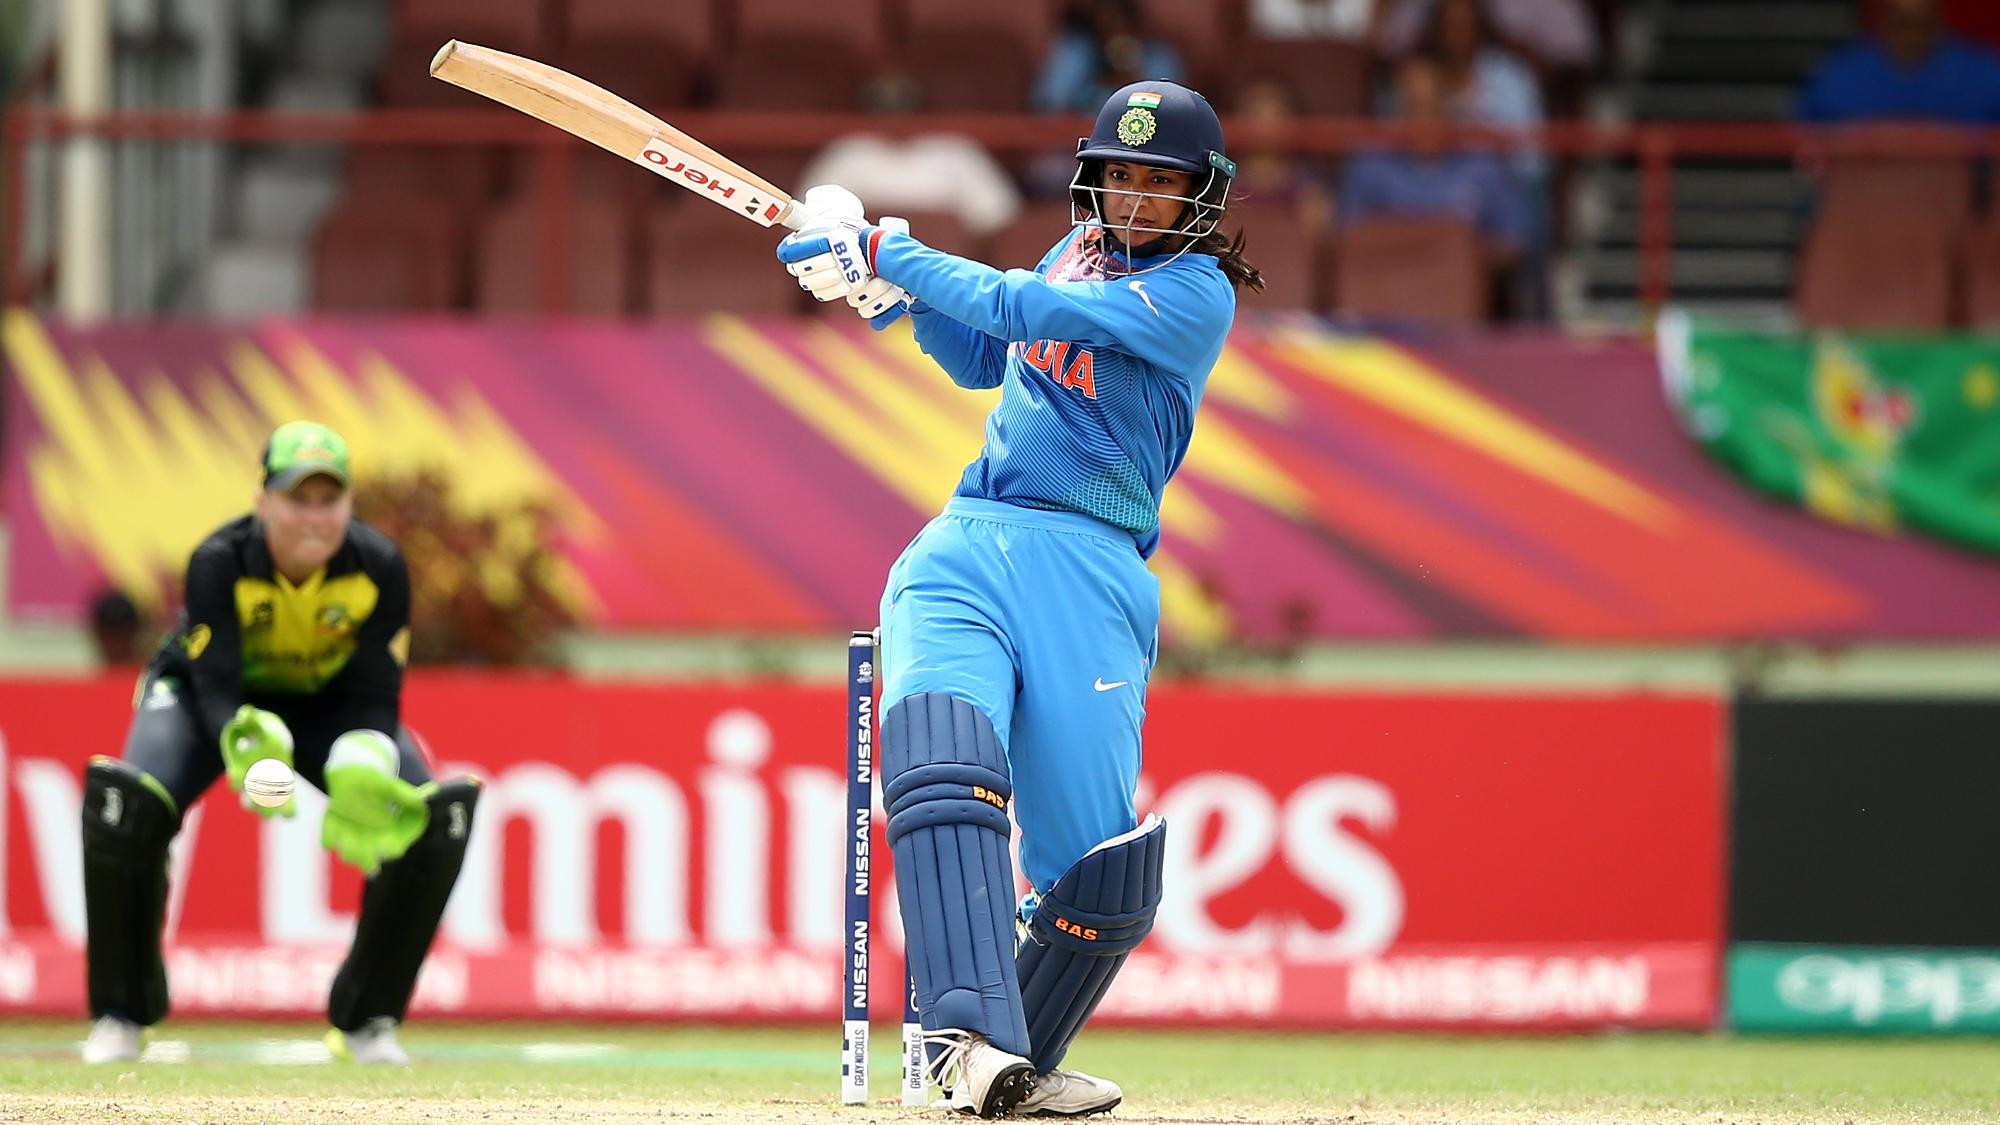 Smriti Mandhana was named ICC Women's Cricketer of the Year.